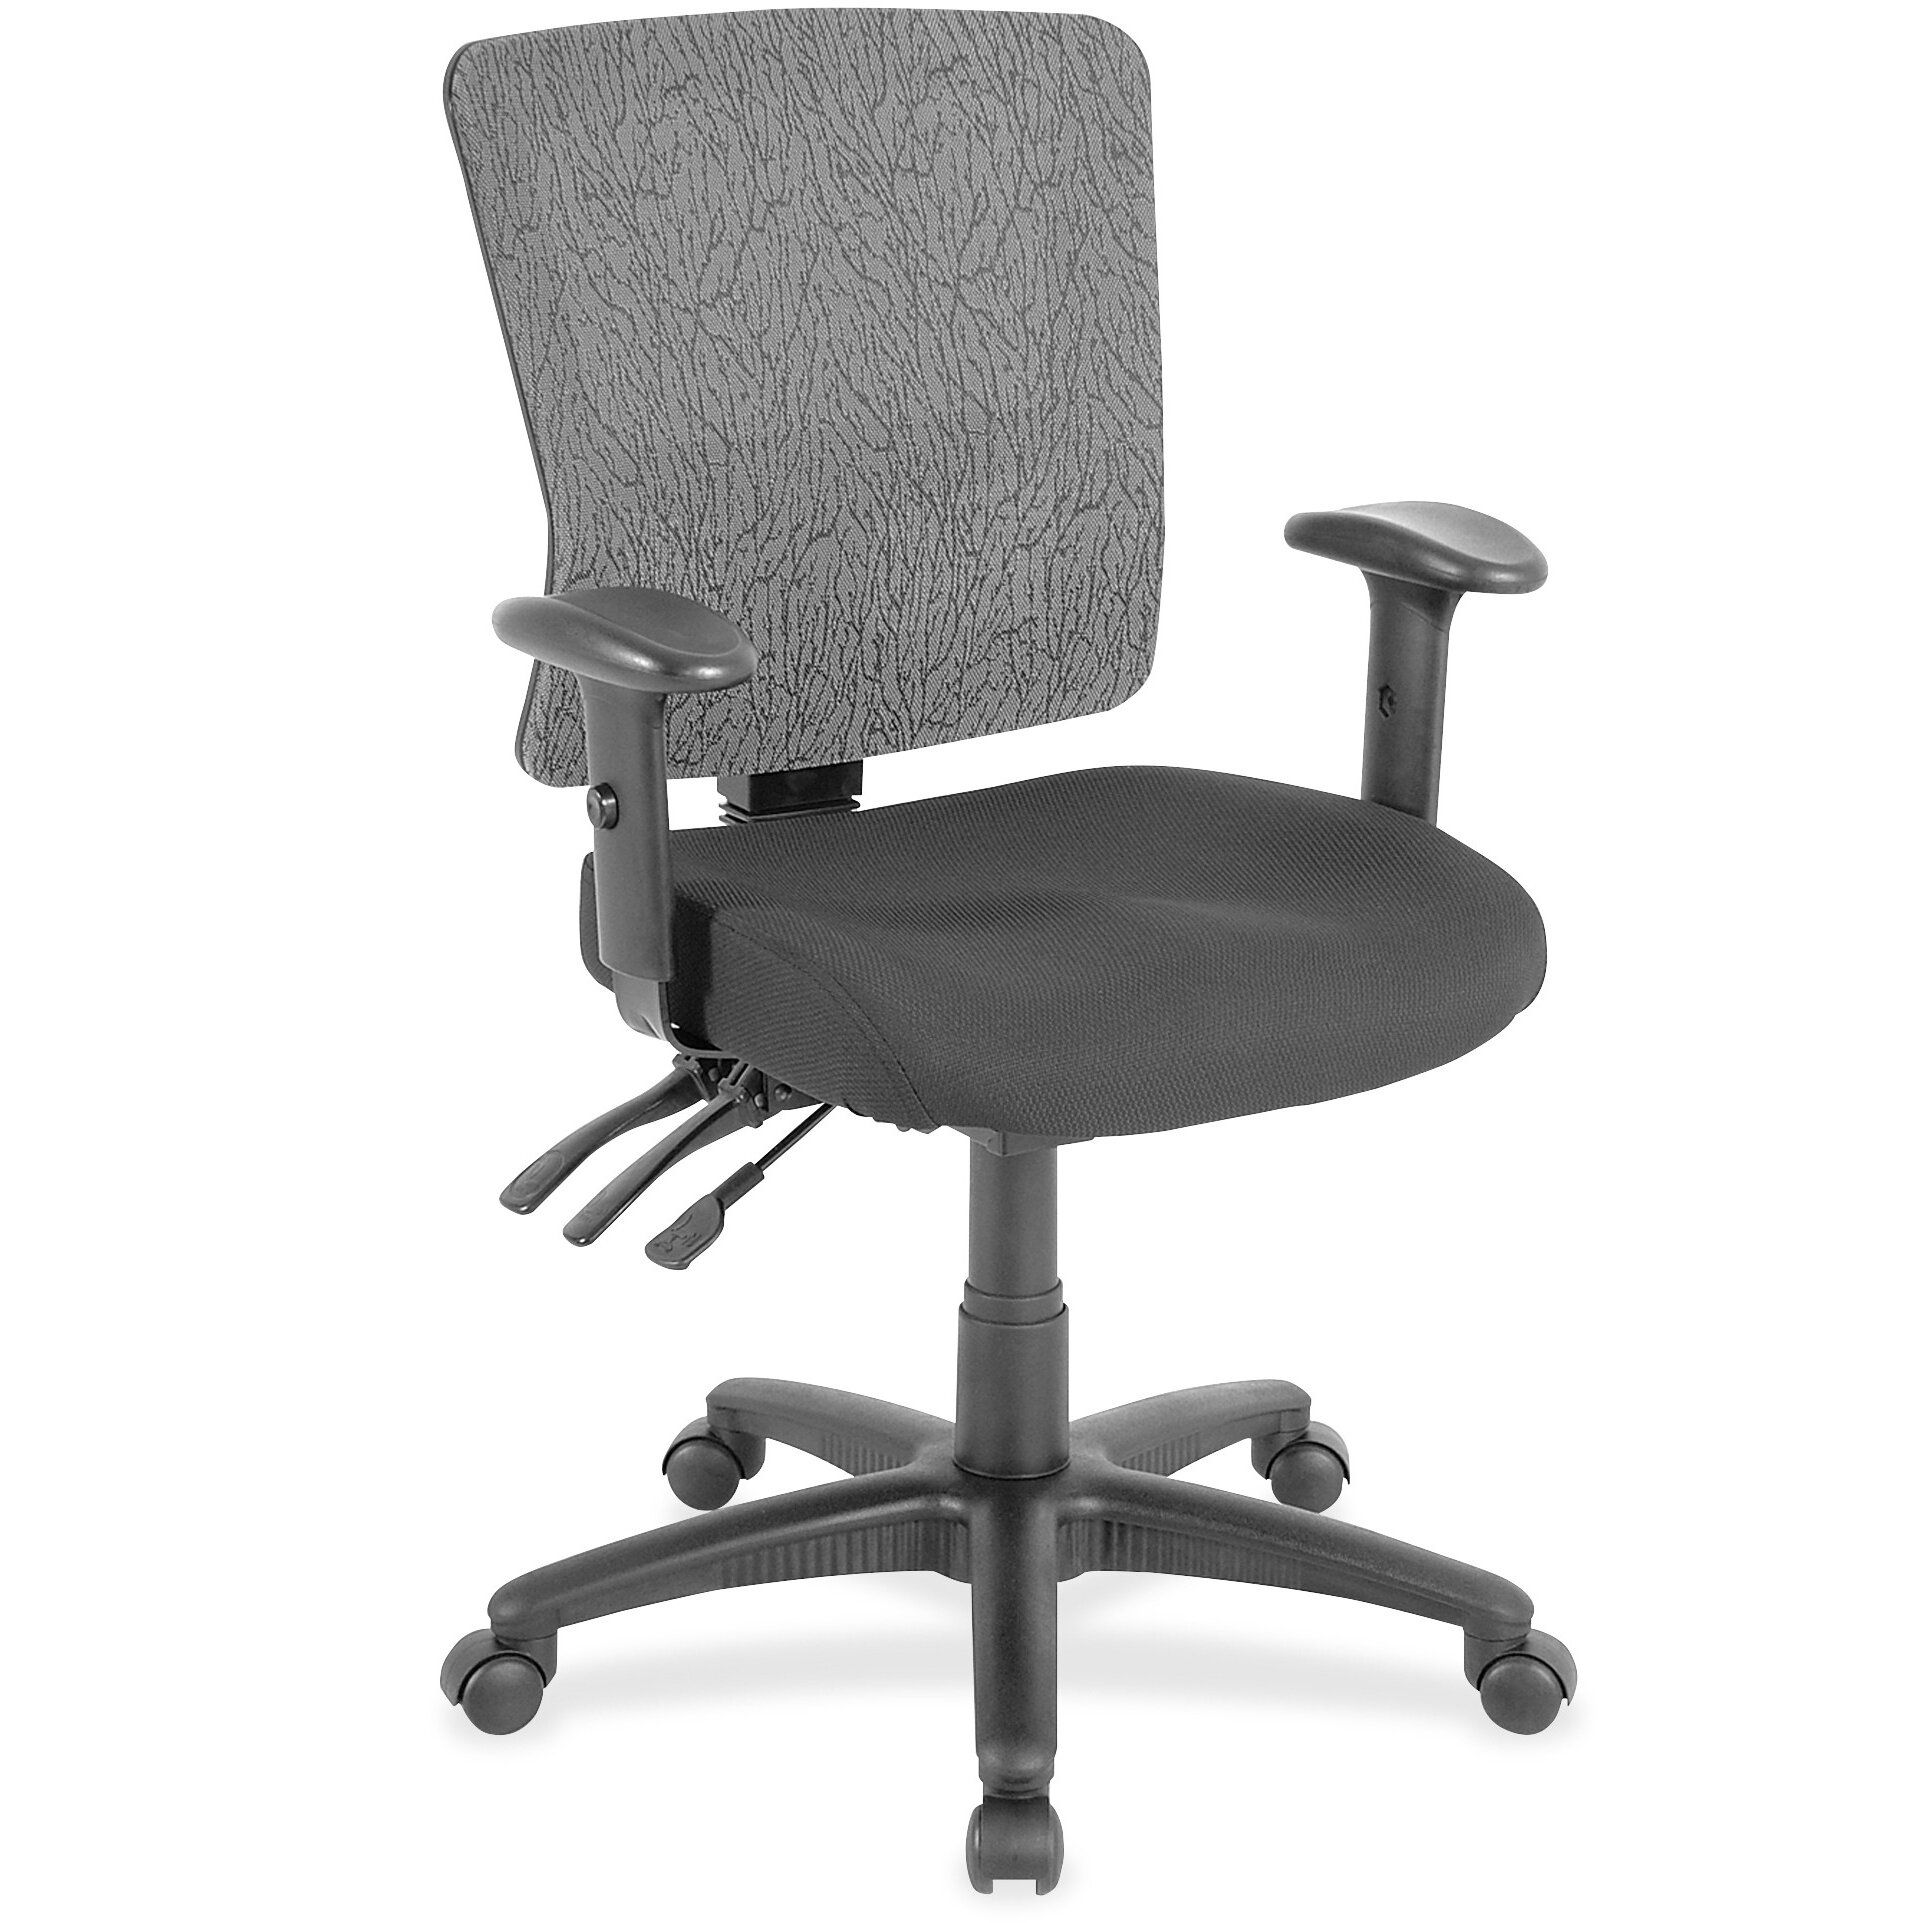 Lorell Desk Chairs Lorell Executive High Back Chair Mesh Fabric